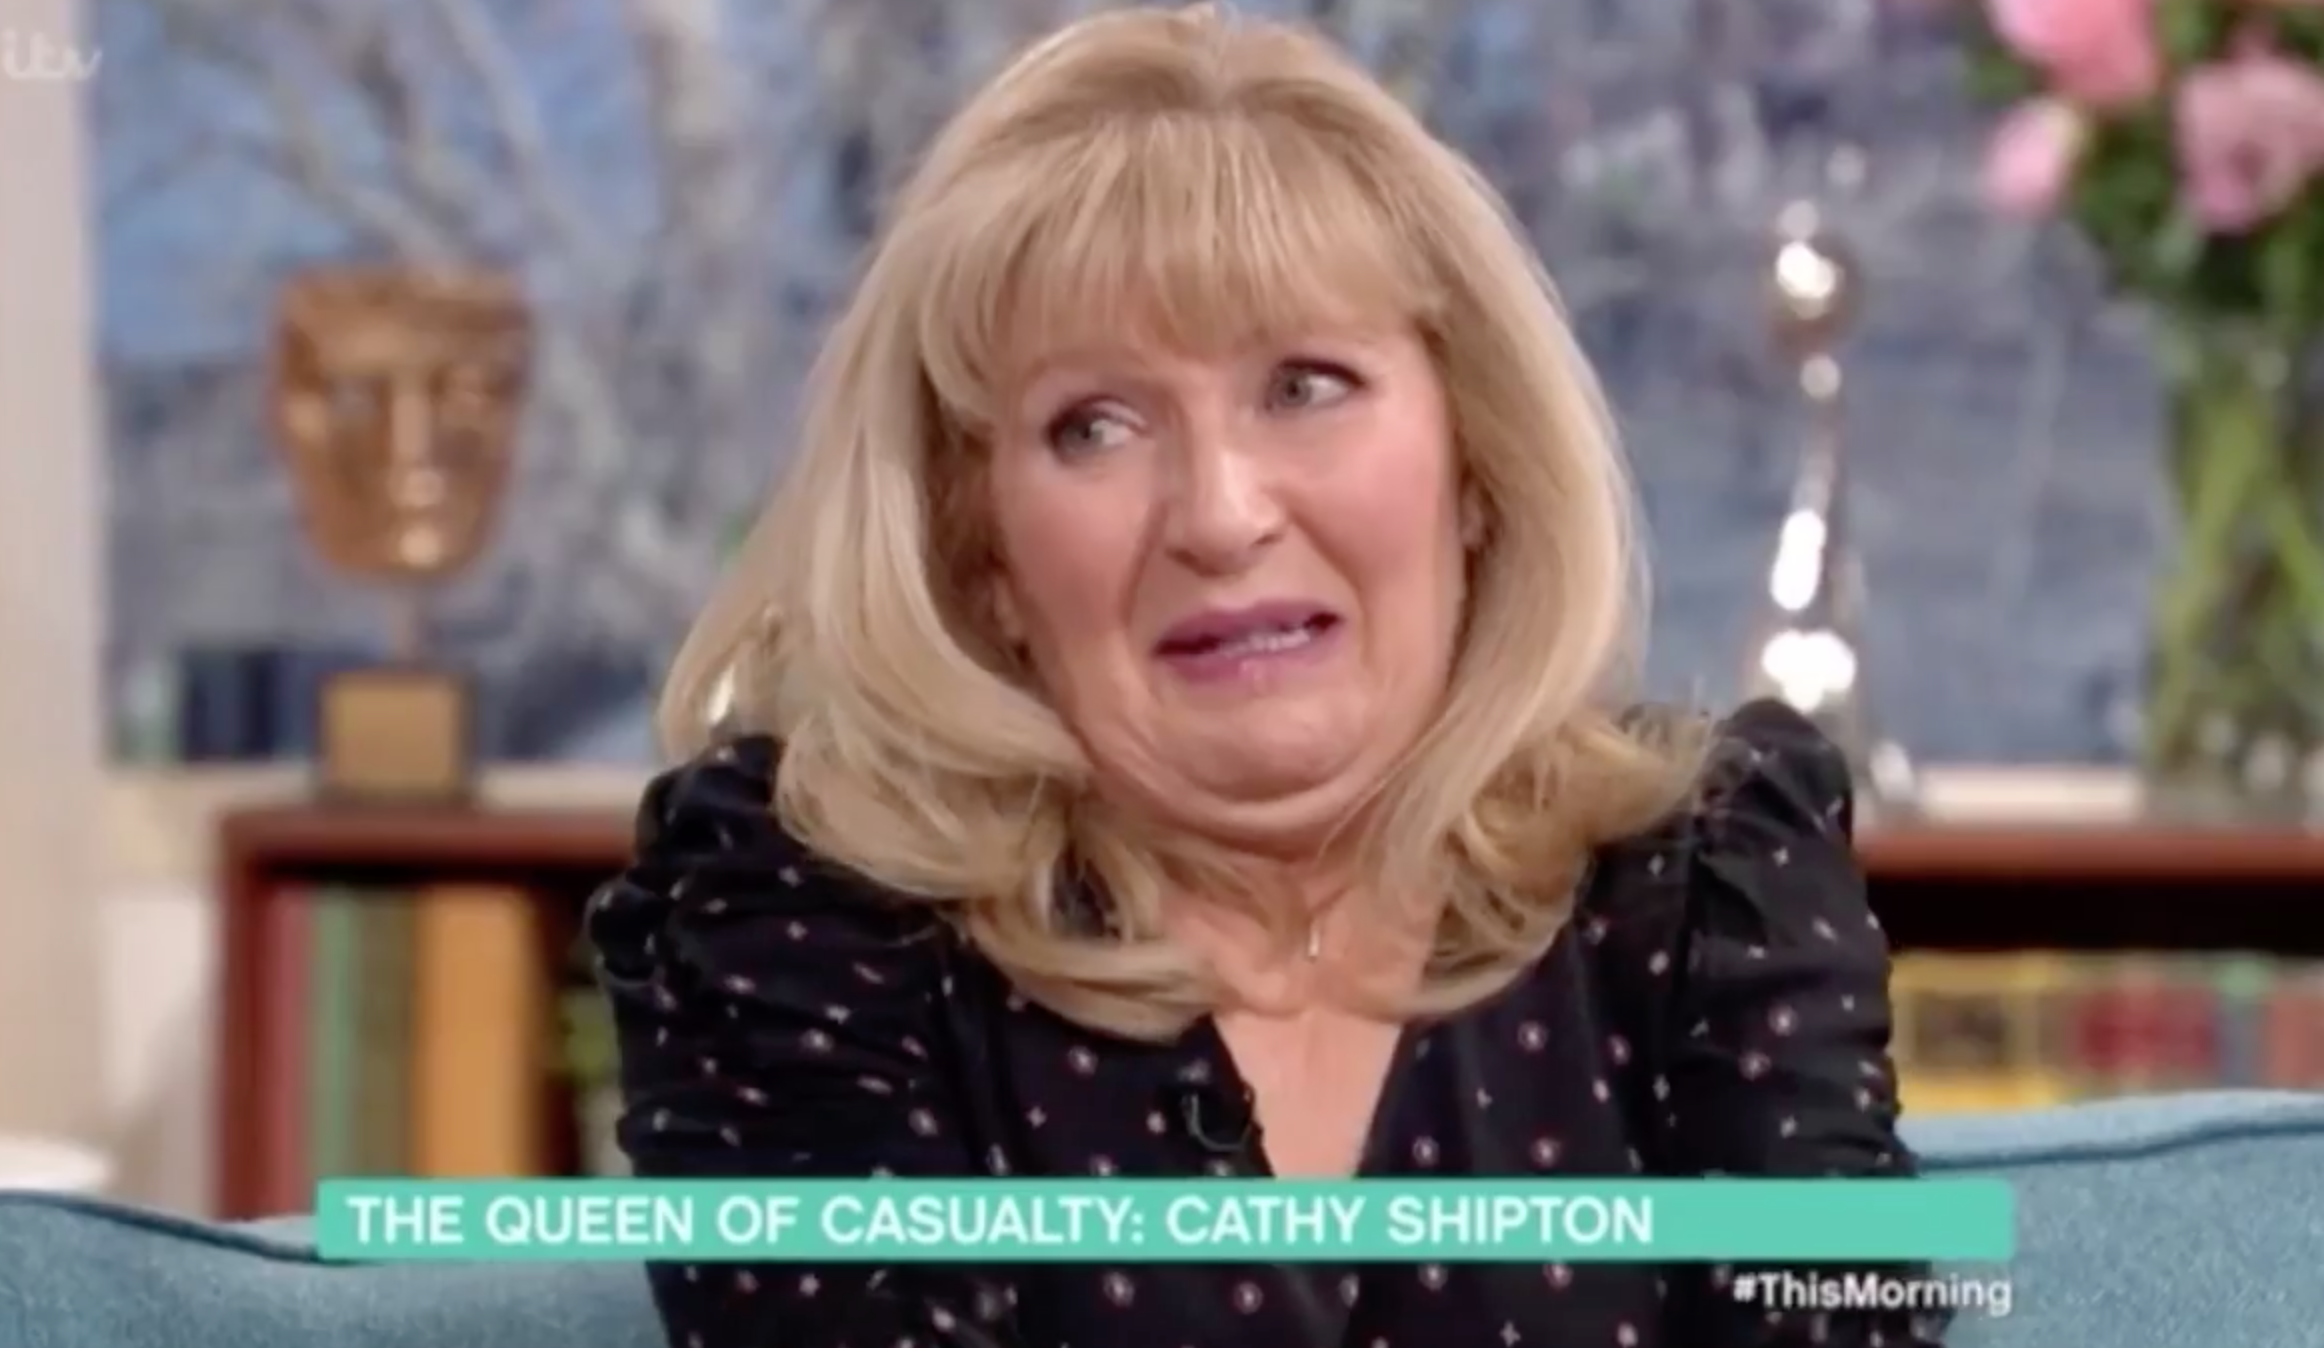 Duffy Cathy Shipton on This Morning with Phillip Schofield